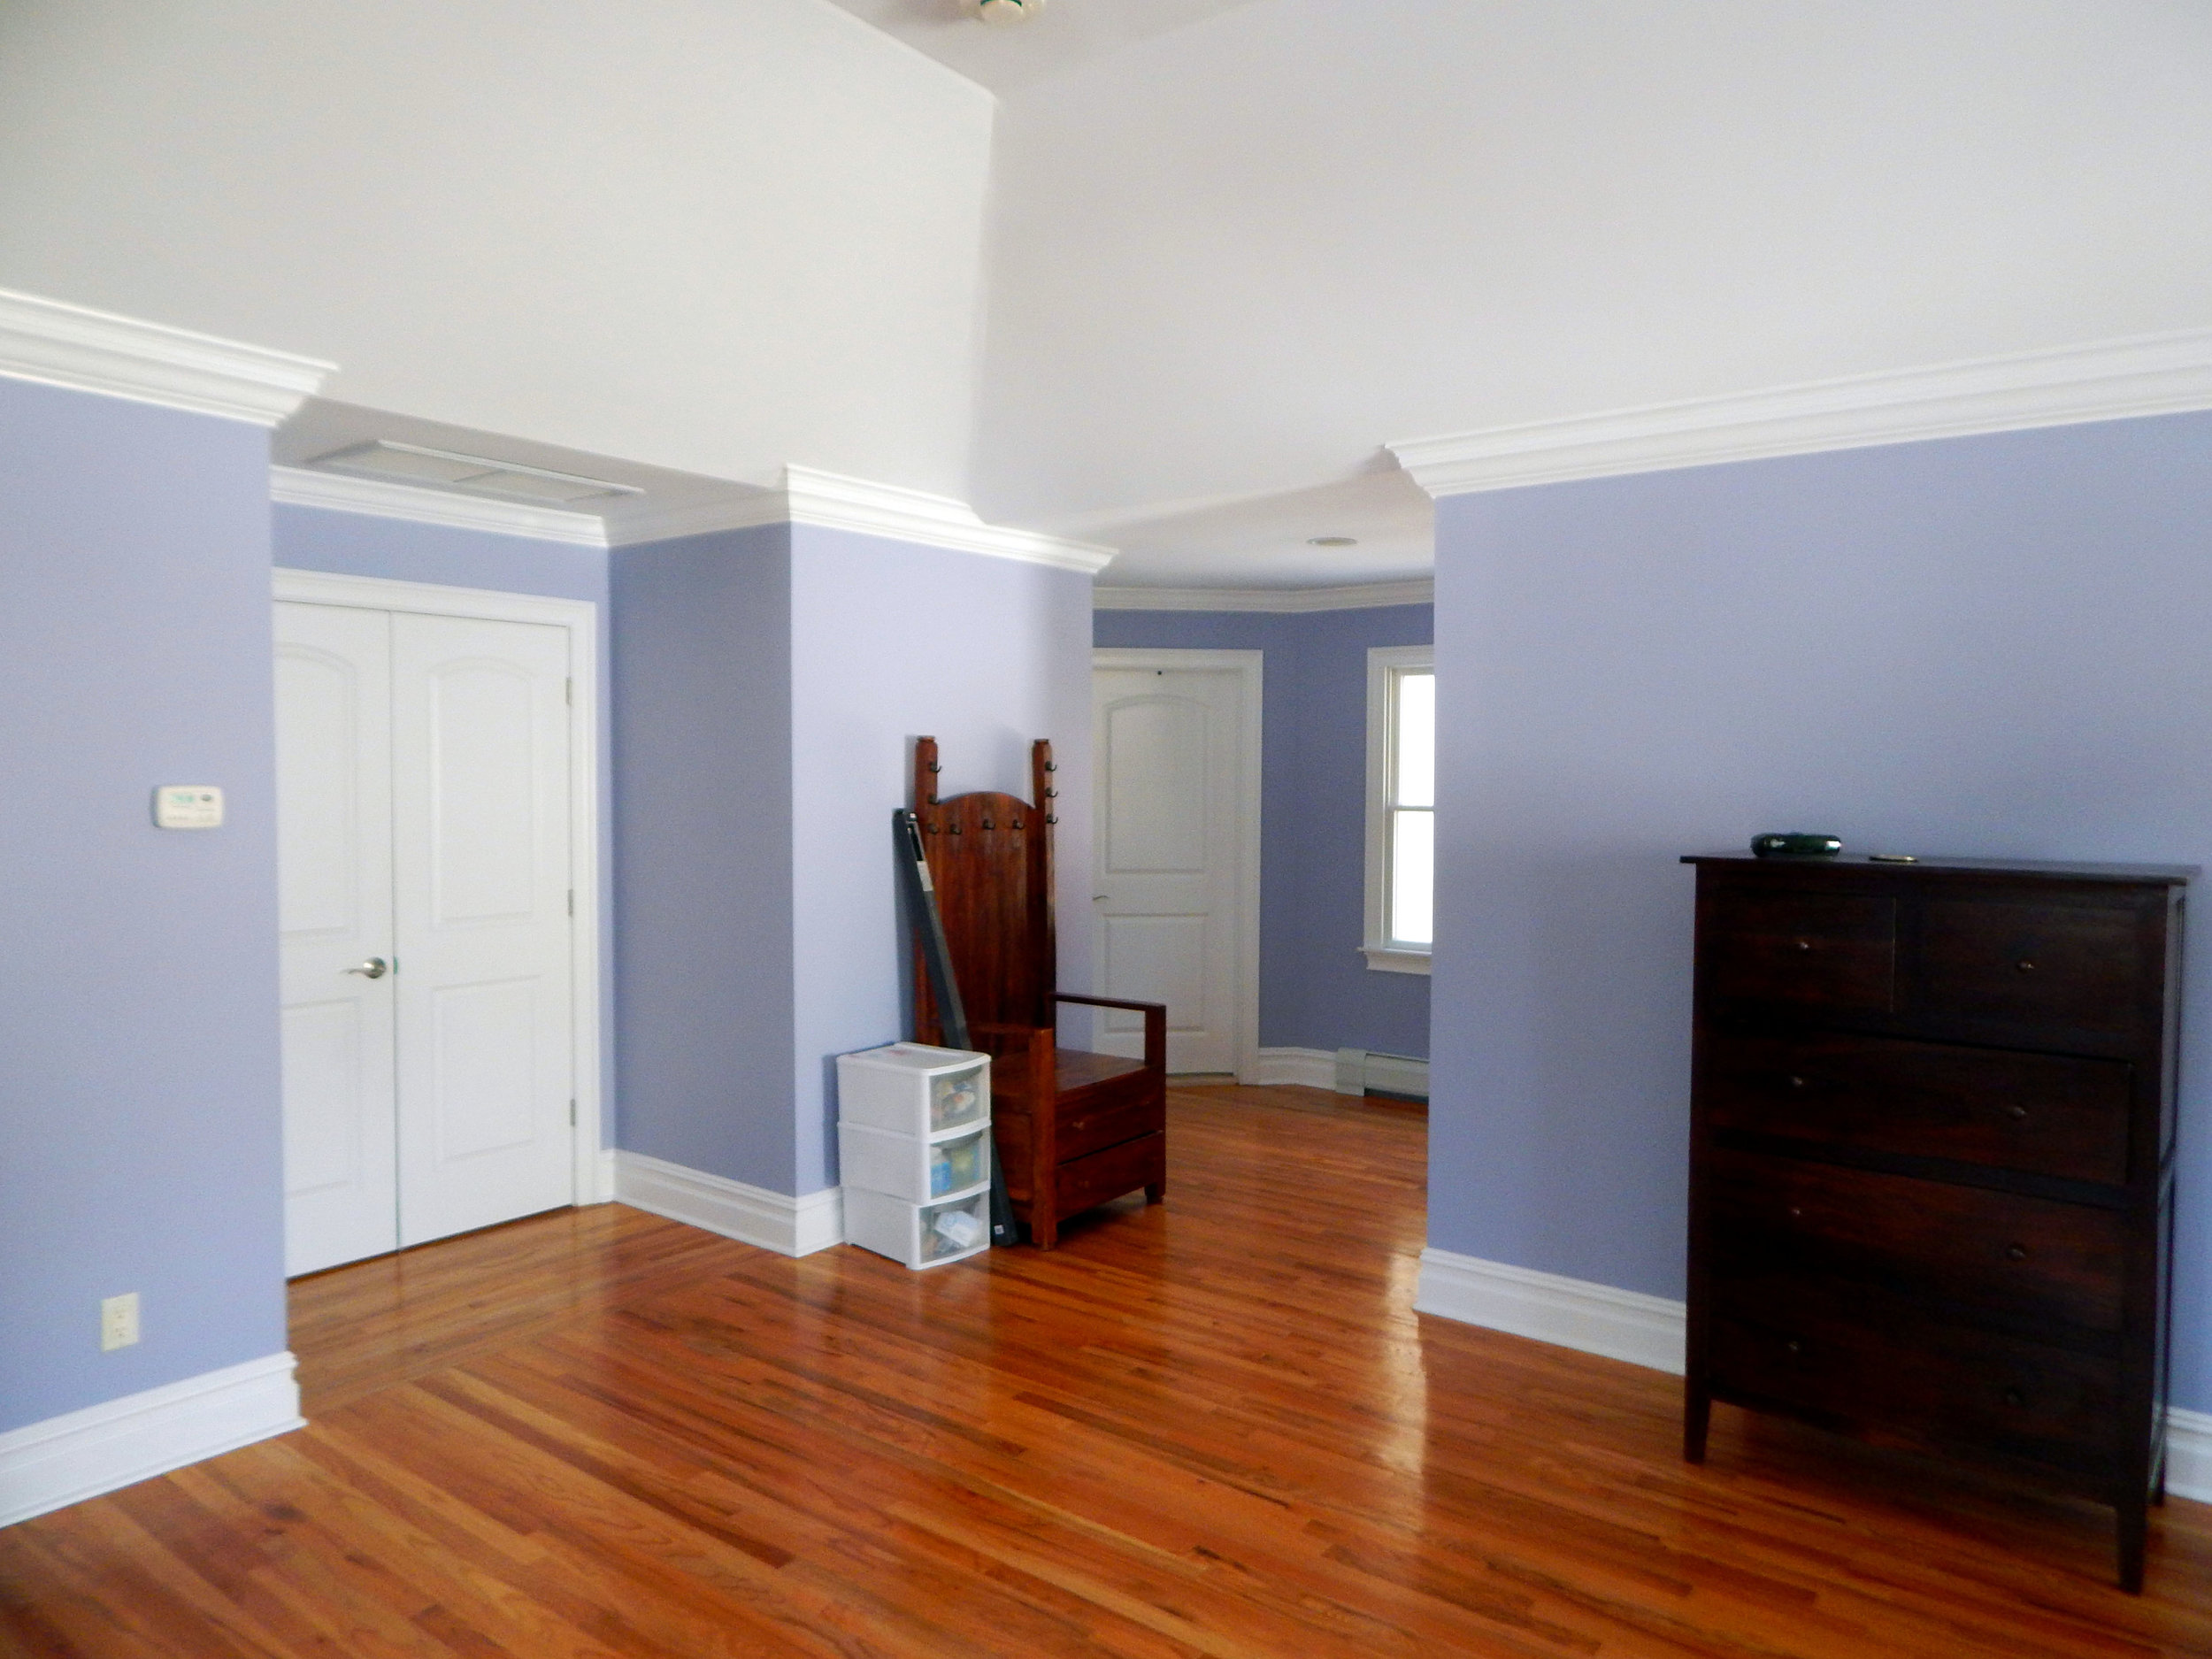 Interior Painting Service Asheville, NC